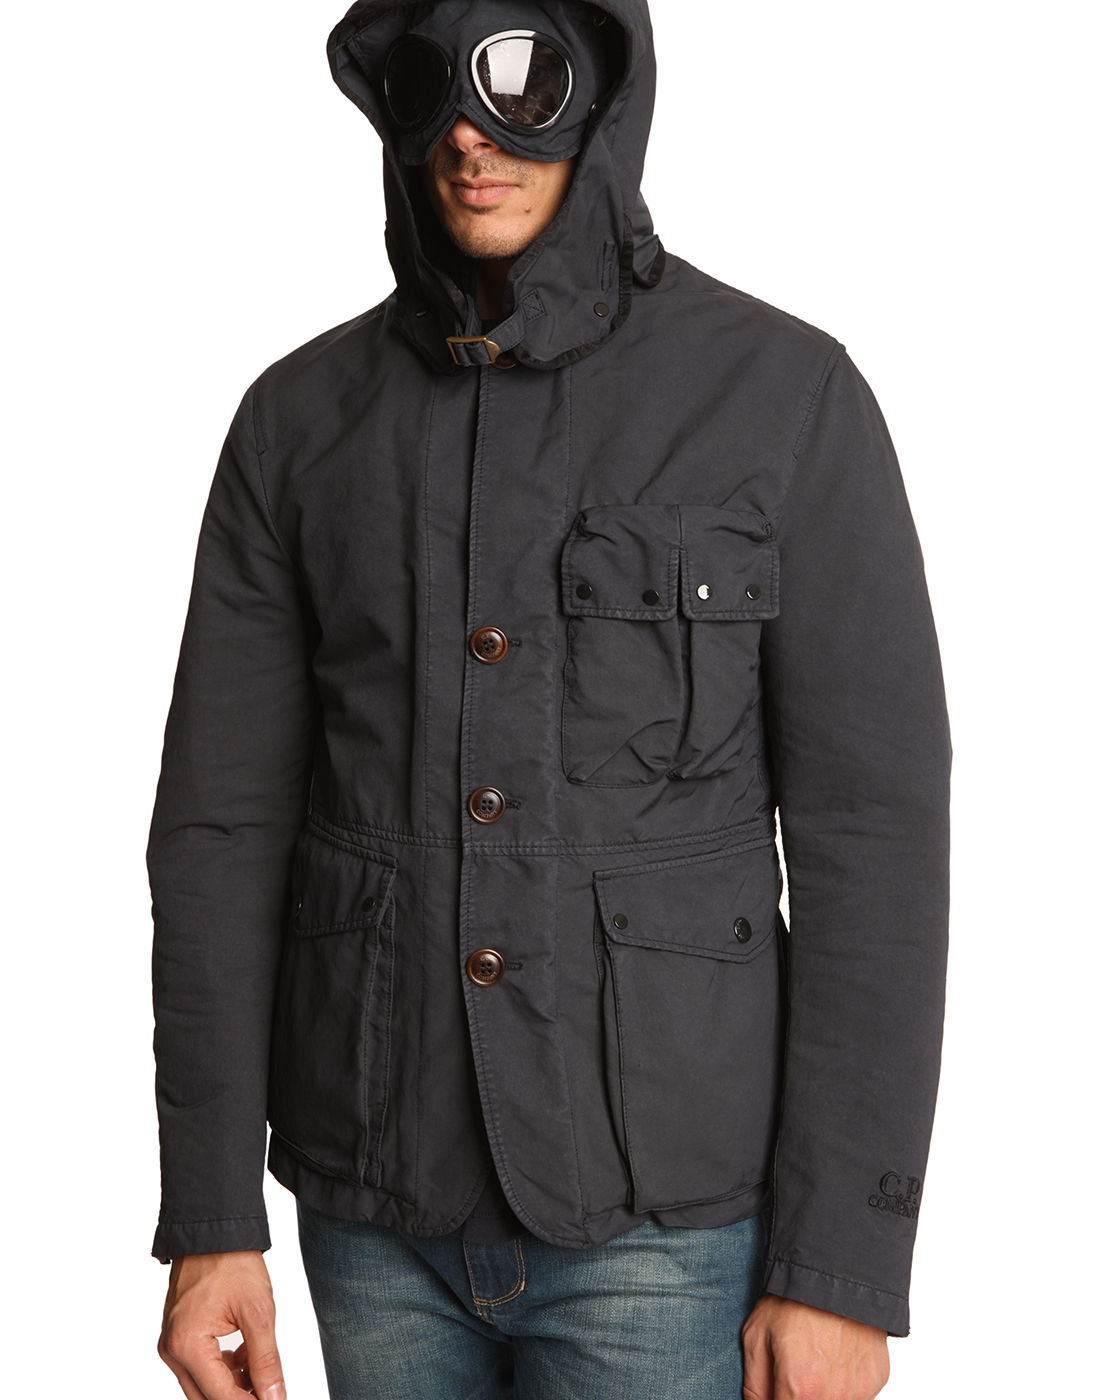 Winter Clothes For Men Welcome to Winter Clothes for Men page, where you can find a variety of winter wear for men such as winter jacket, duck down jacket, winter coat, sweater coat, cardigan and so on.